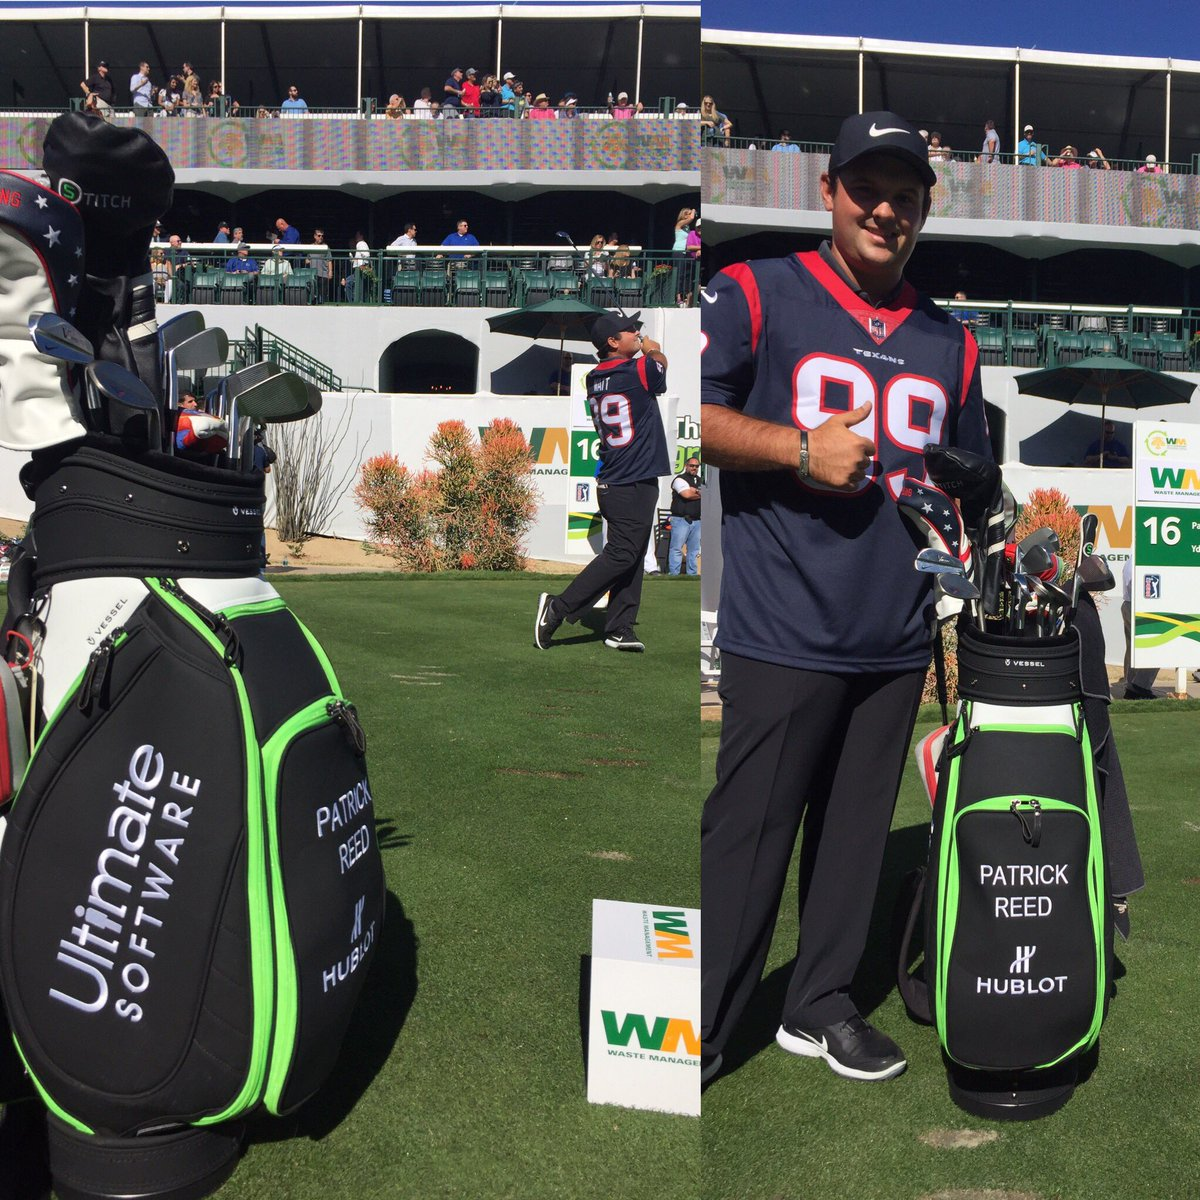 @HoustonTexans Love to rep our Texans! Having some fun at the #GreenestShow @UltimateHCM @Hublot @nikegolf